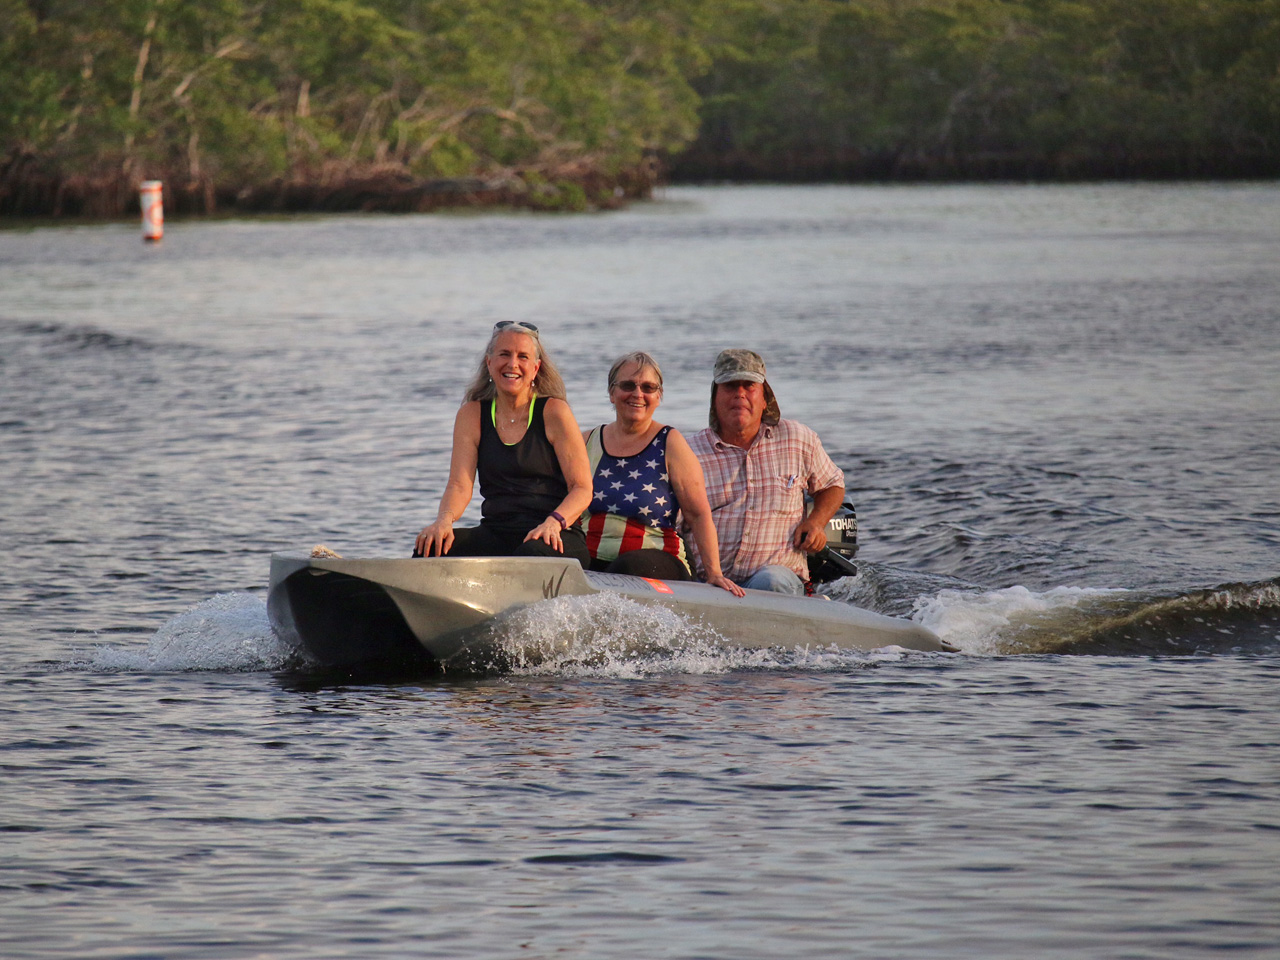 Wavewalk S4 skiff with a crew of three, Key Largo